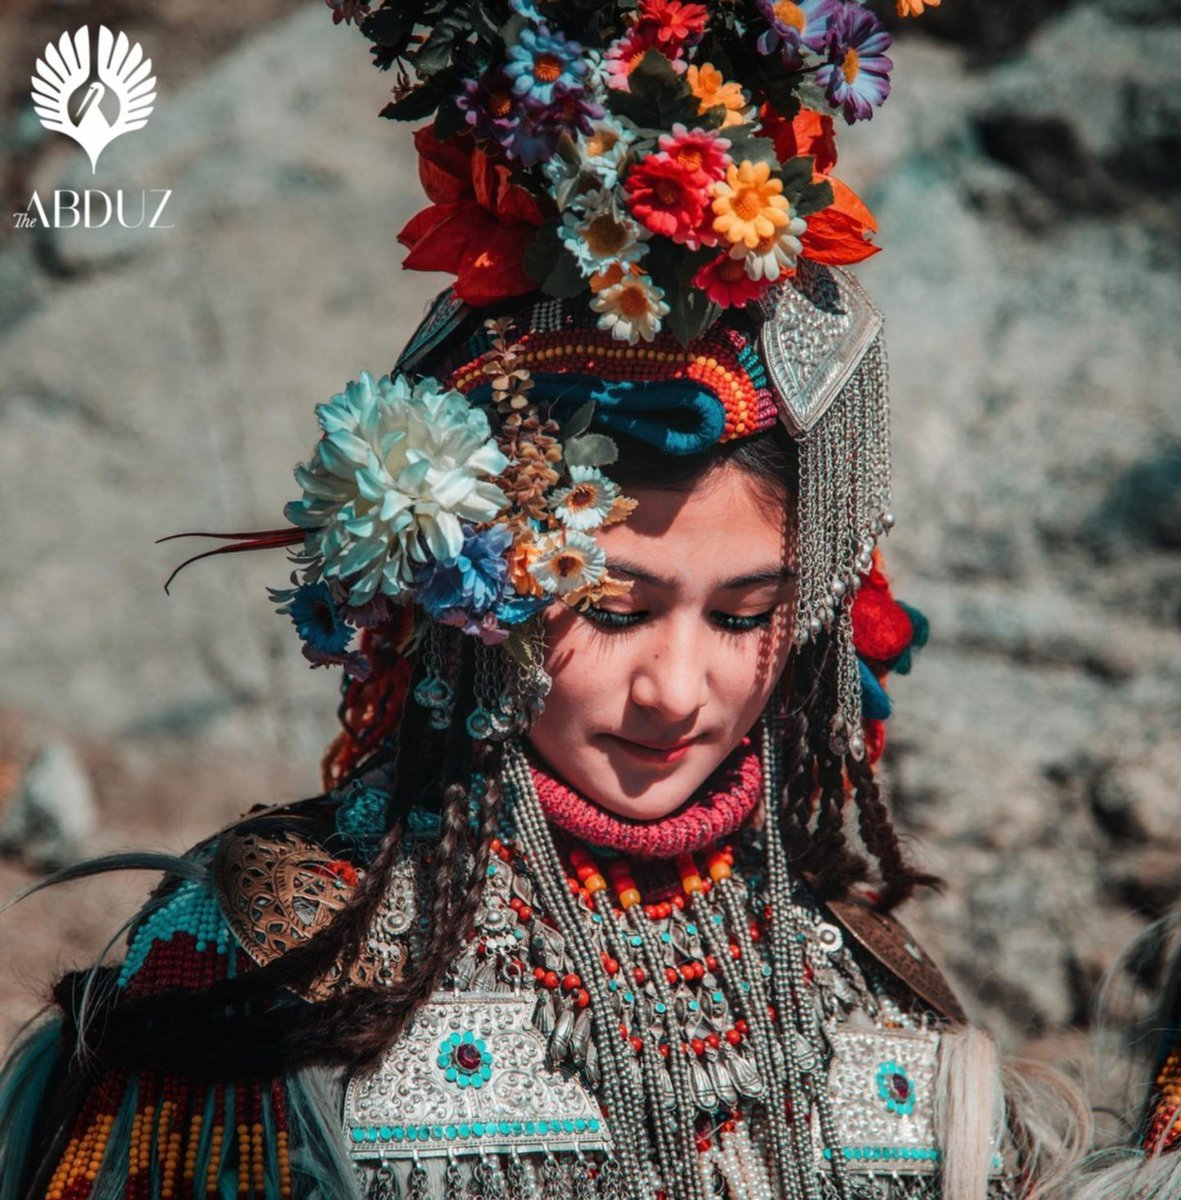 """""""Experience the tradition"""" Visit : https://t.co/wIgM7FqwAt #leh #ladakh #india #theabduz #tourism #wanderlust #tradition #aryan #valley #explore #discover #voyage #ig #instagram #facebook #travel #love #flowers #culture #beauty #bonvoyage #twitter #visit #mountains #passes https://t.co/2UbY8noBXQ"""